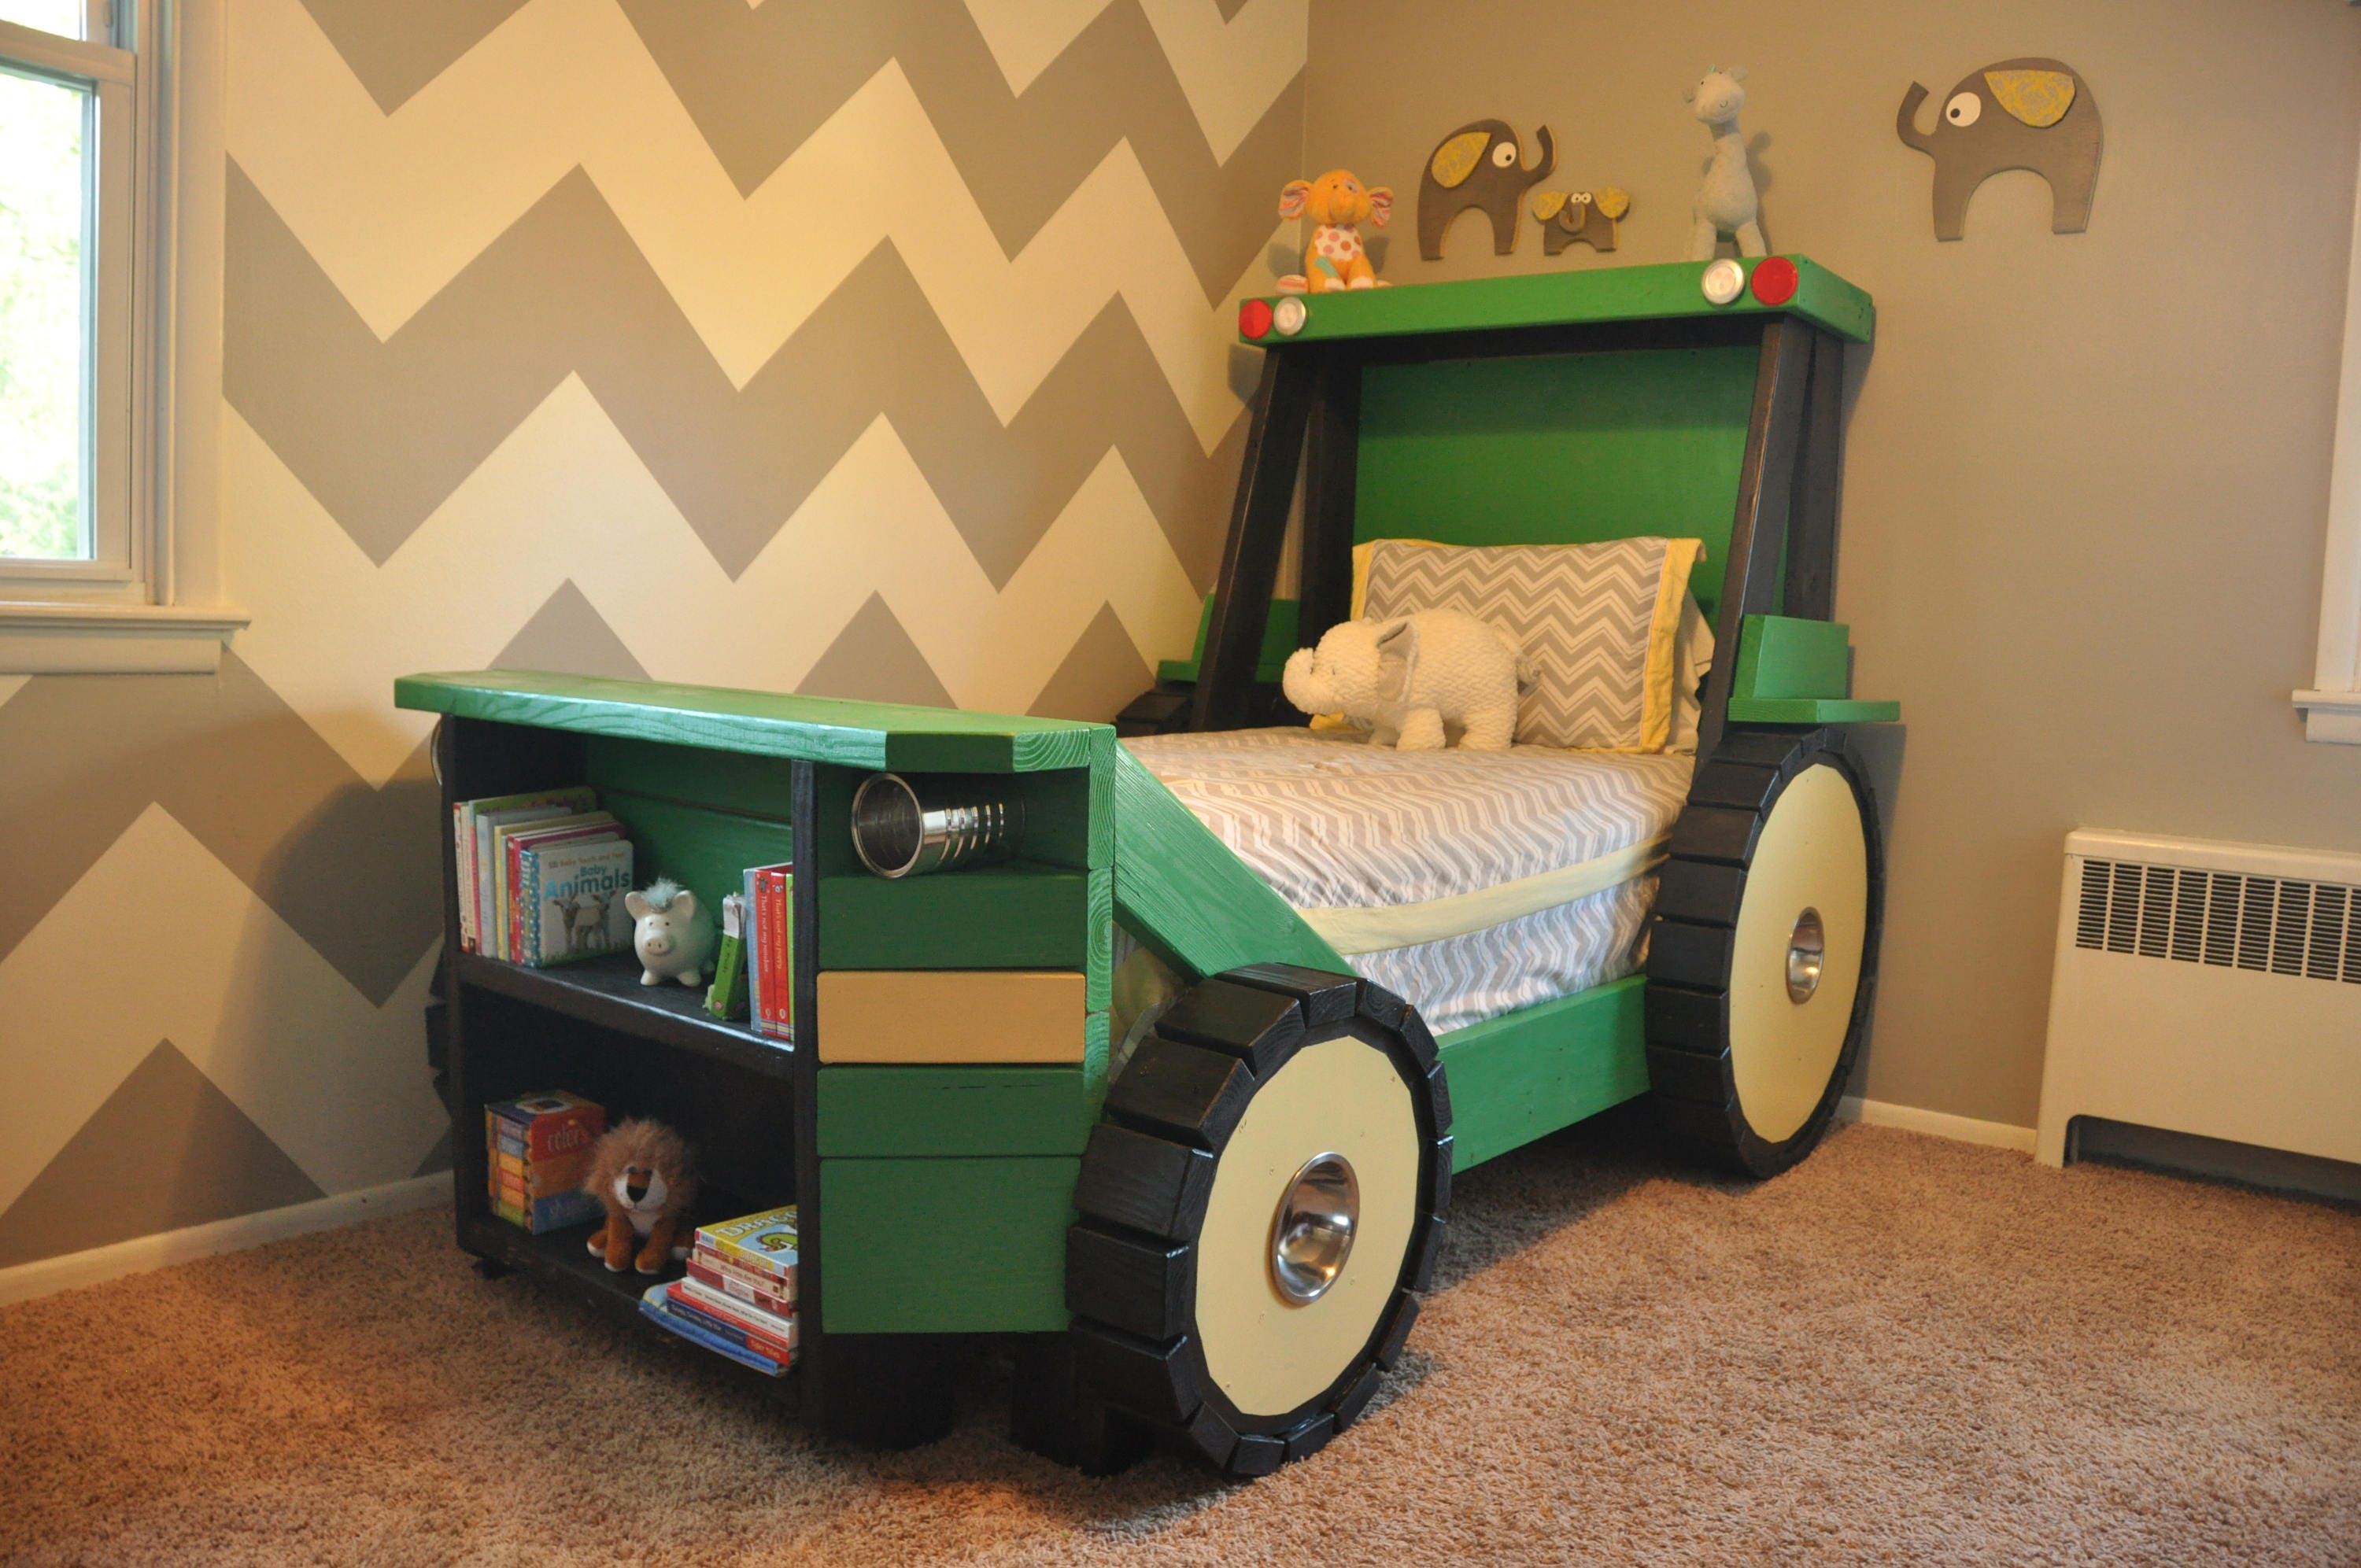 Tractor Bed Design : Tractor bed plans in digital format for a diy farm themed